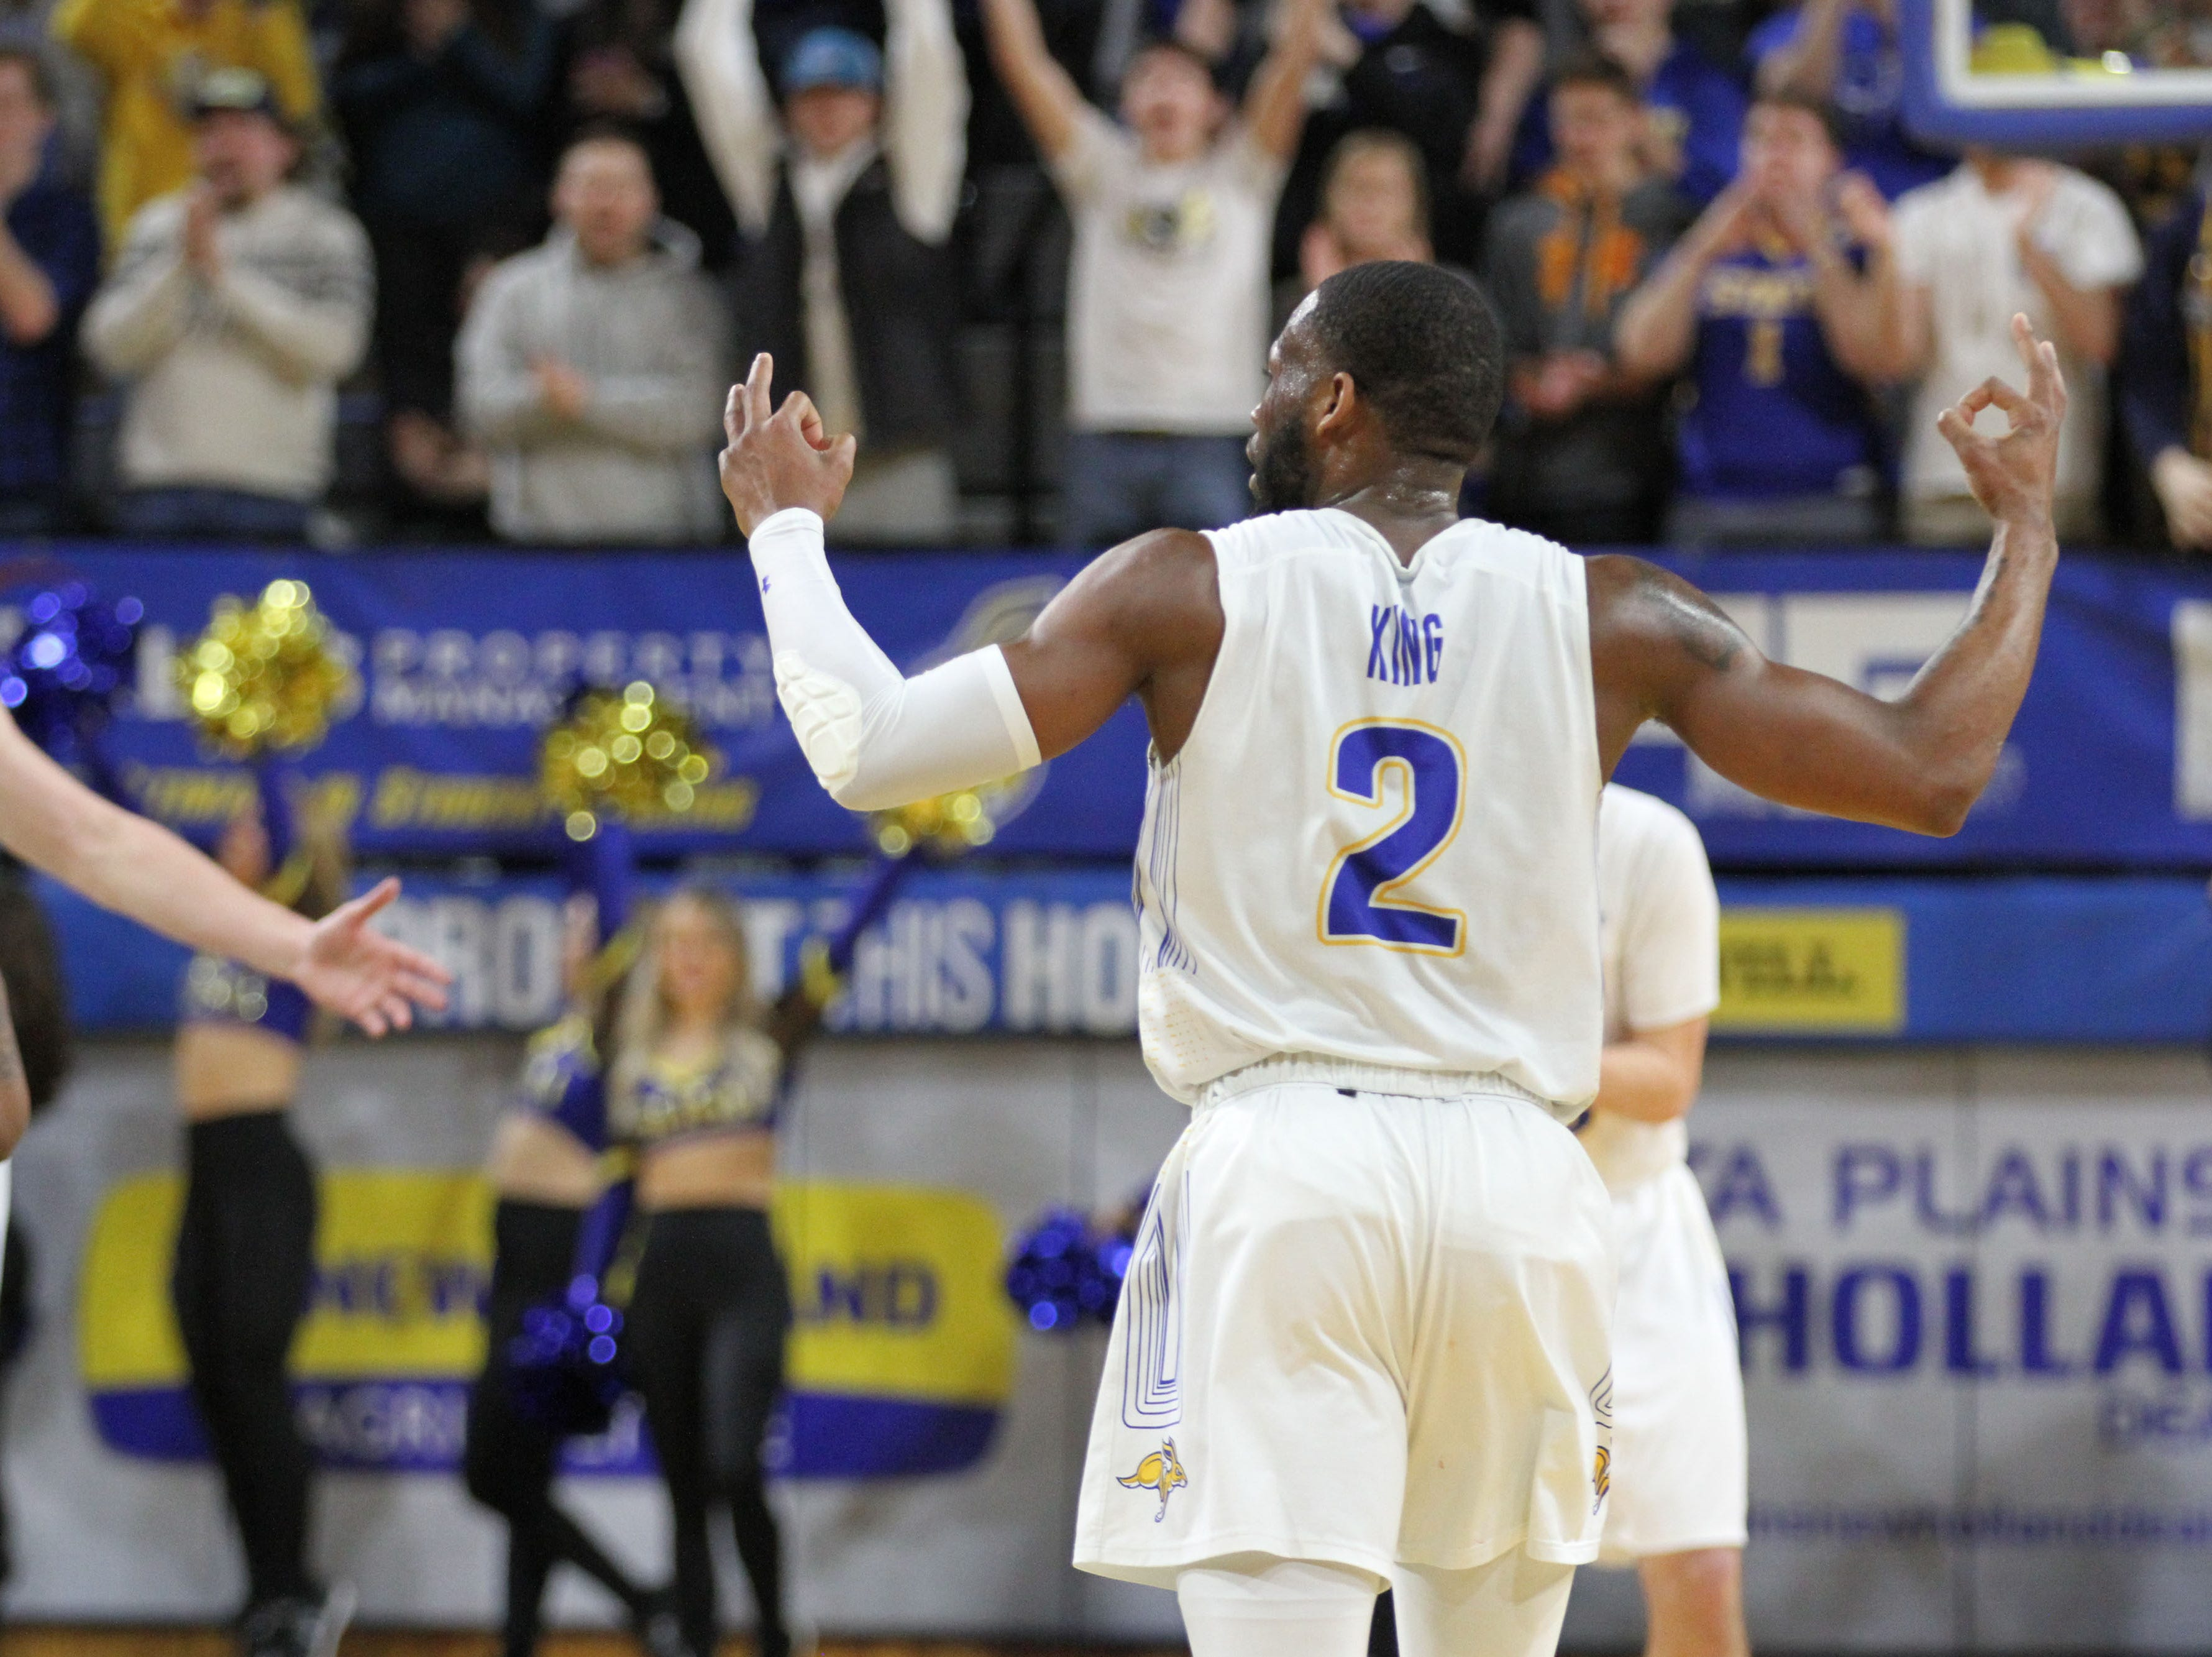 South Dakota State's Tevin King celebrates a made 3-pointer during the second half of the Jackrabbits' matchup with Oral Roberts Saturday afternoon at Frost Arena in Brookings.